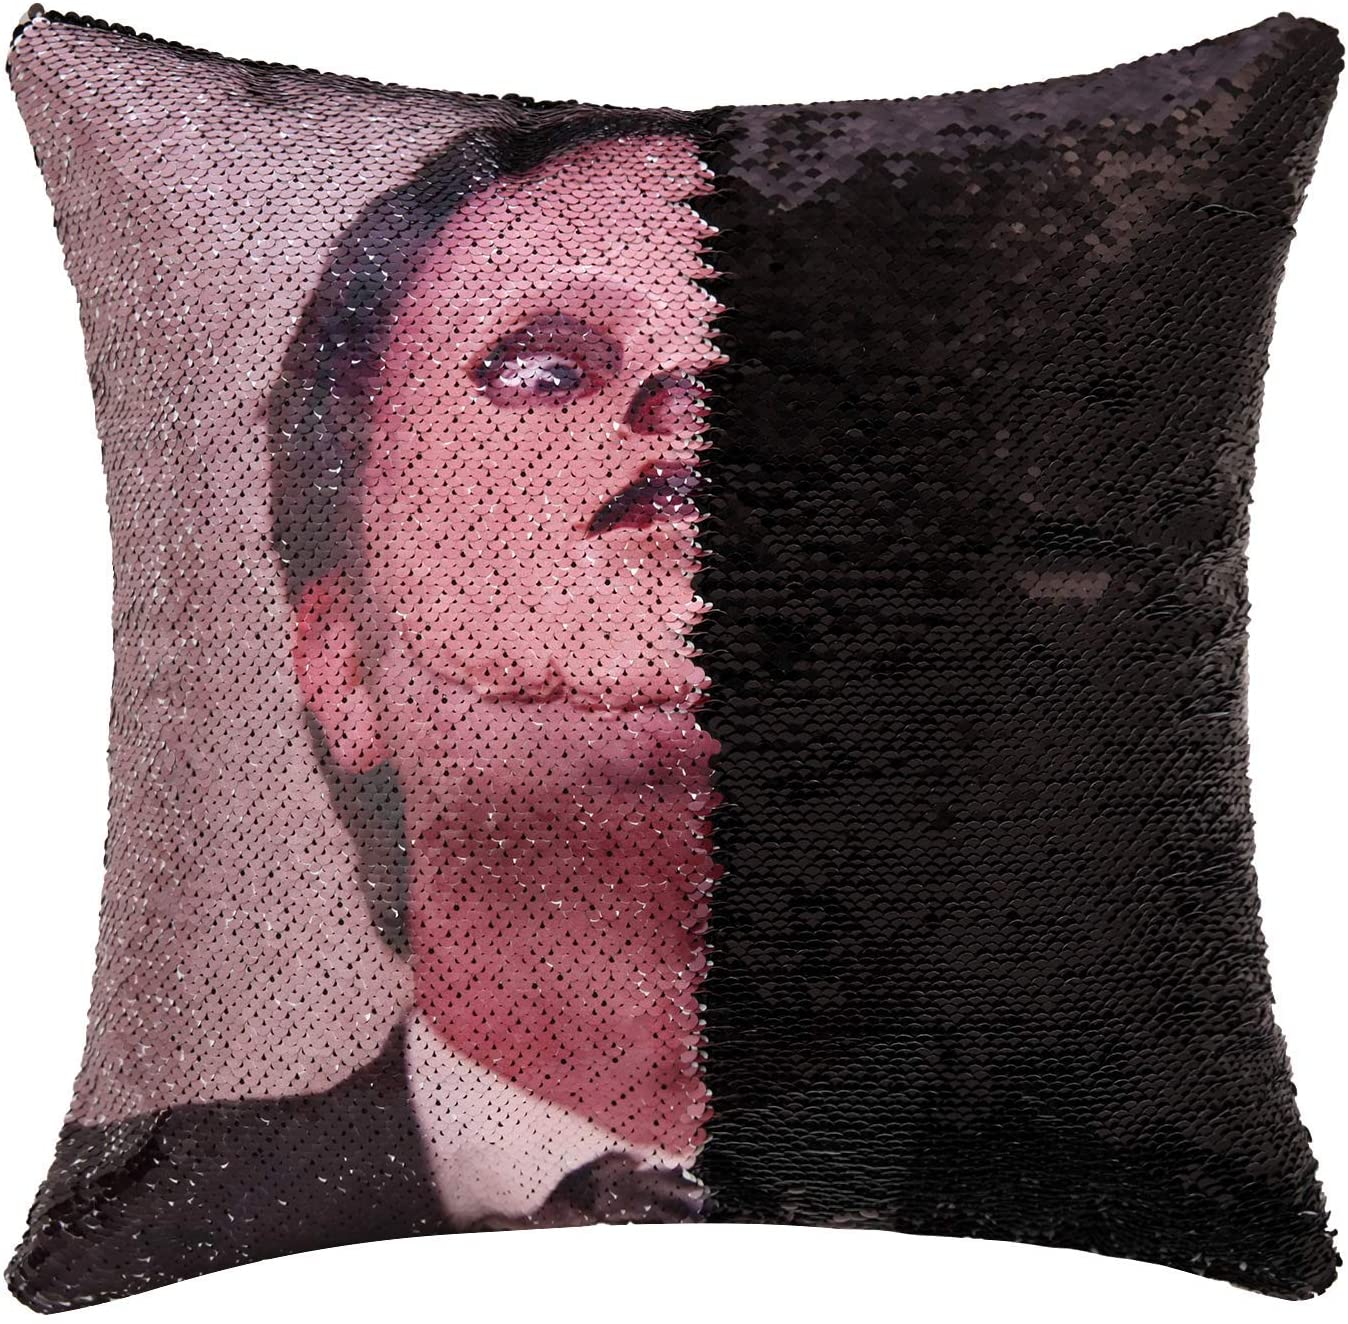 3. The Office Dwight Reversible Sequins Throw Pillow Cover